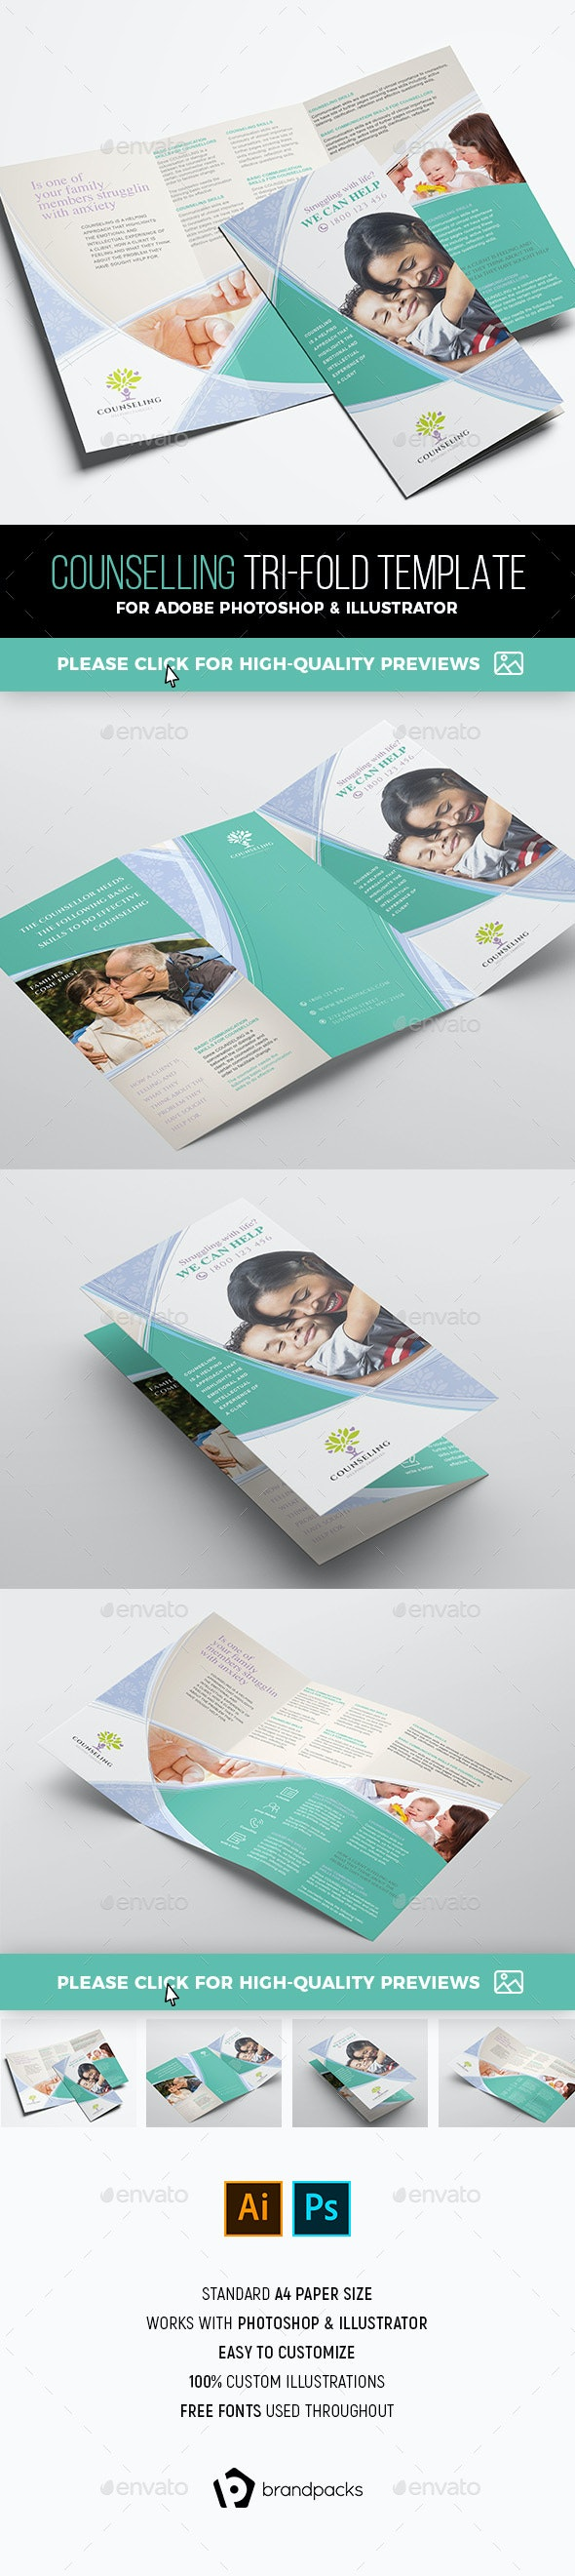 Counselling Tri-Fold Brochure Template - Corporate Brochures